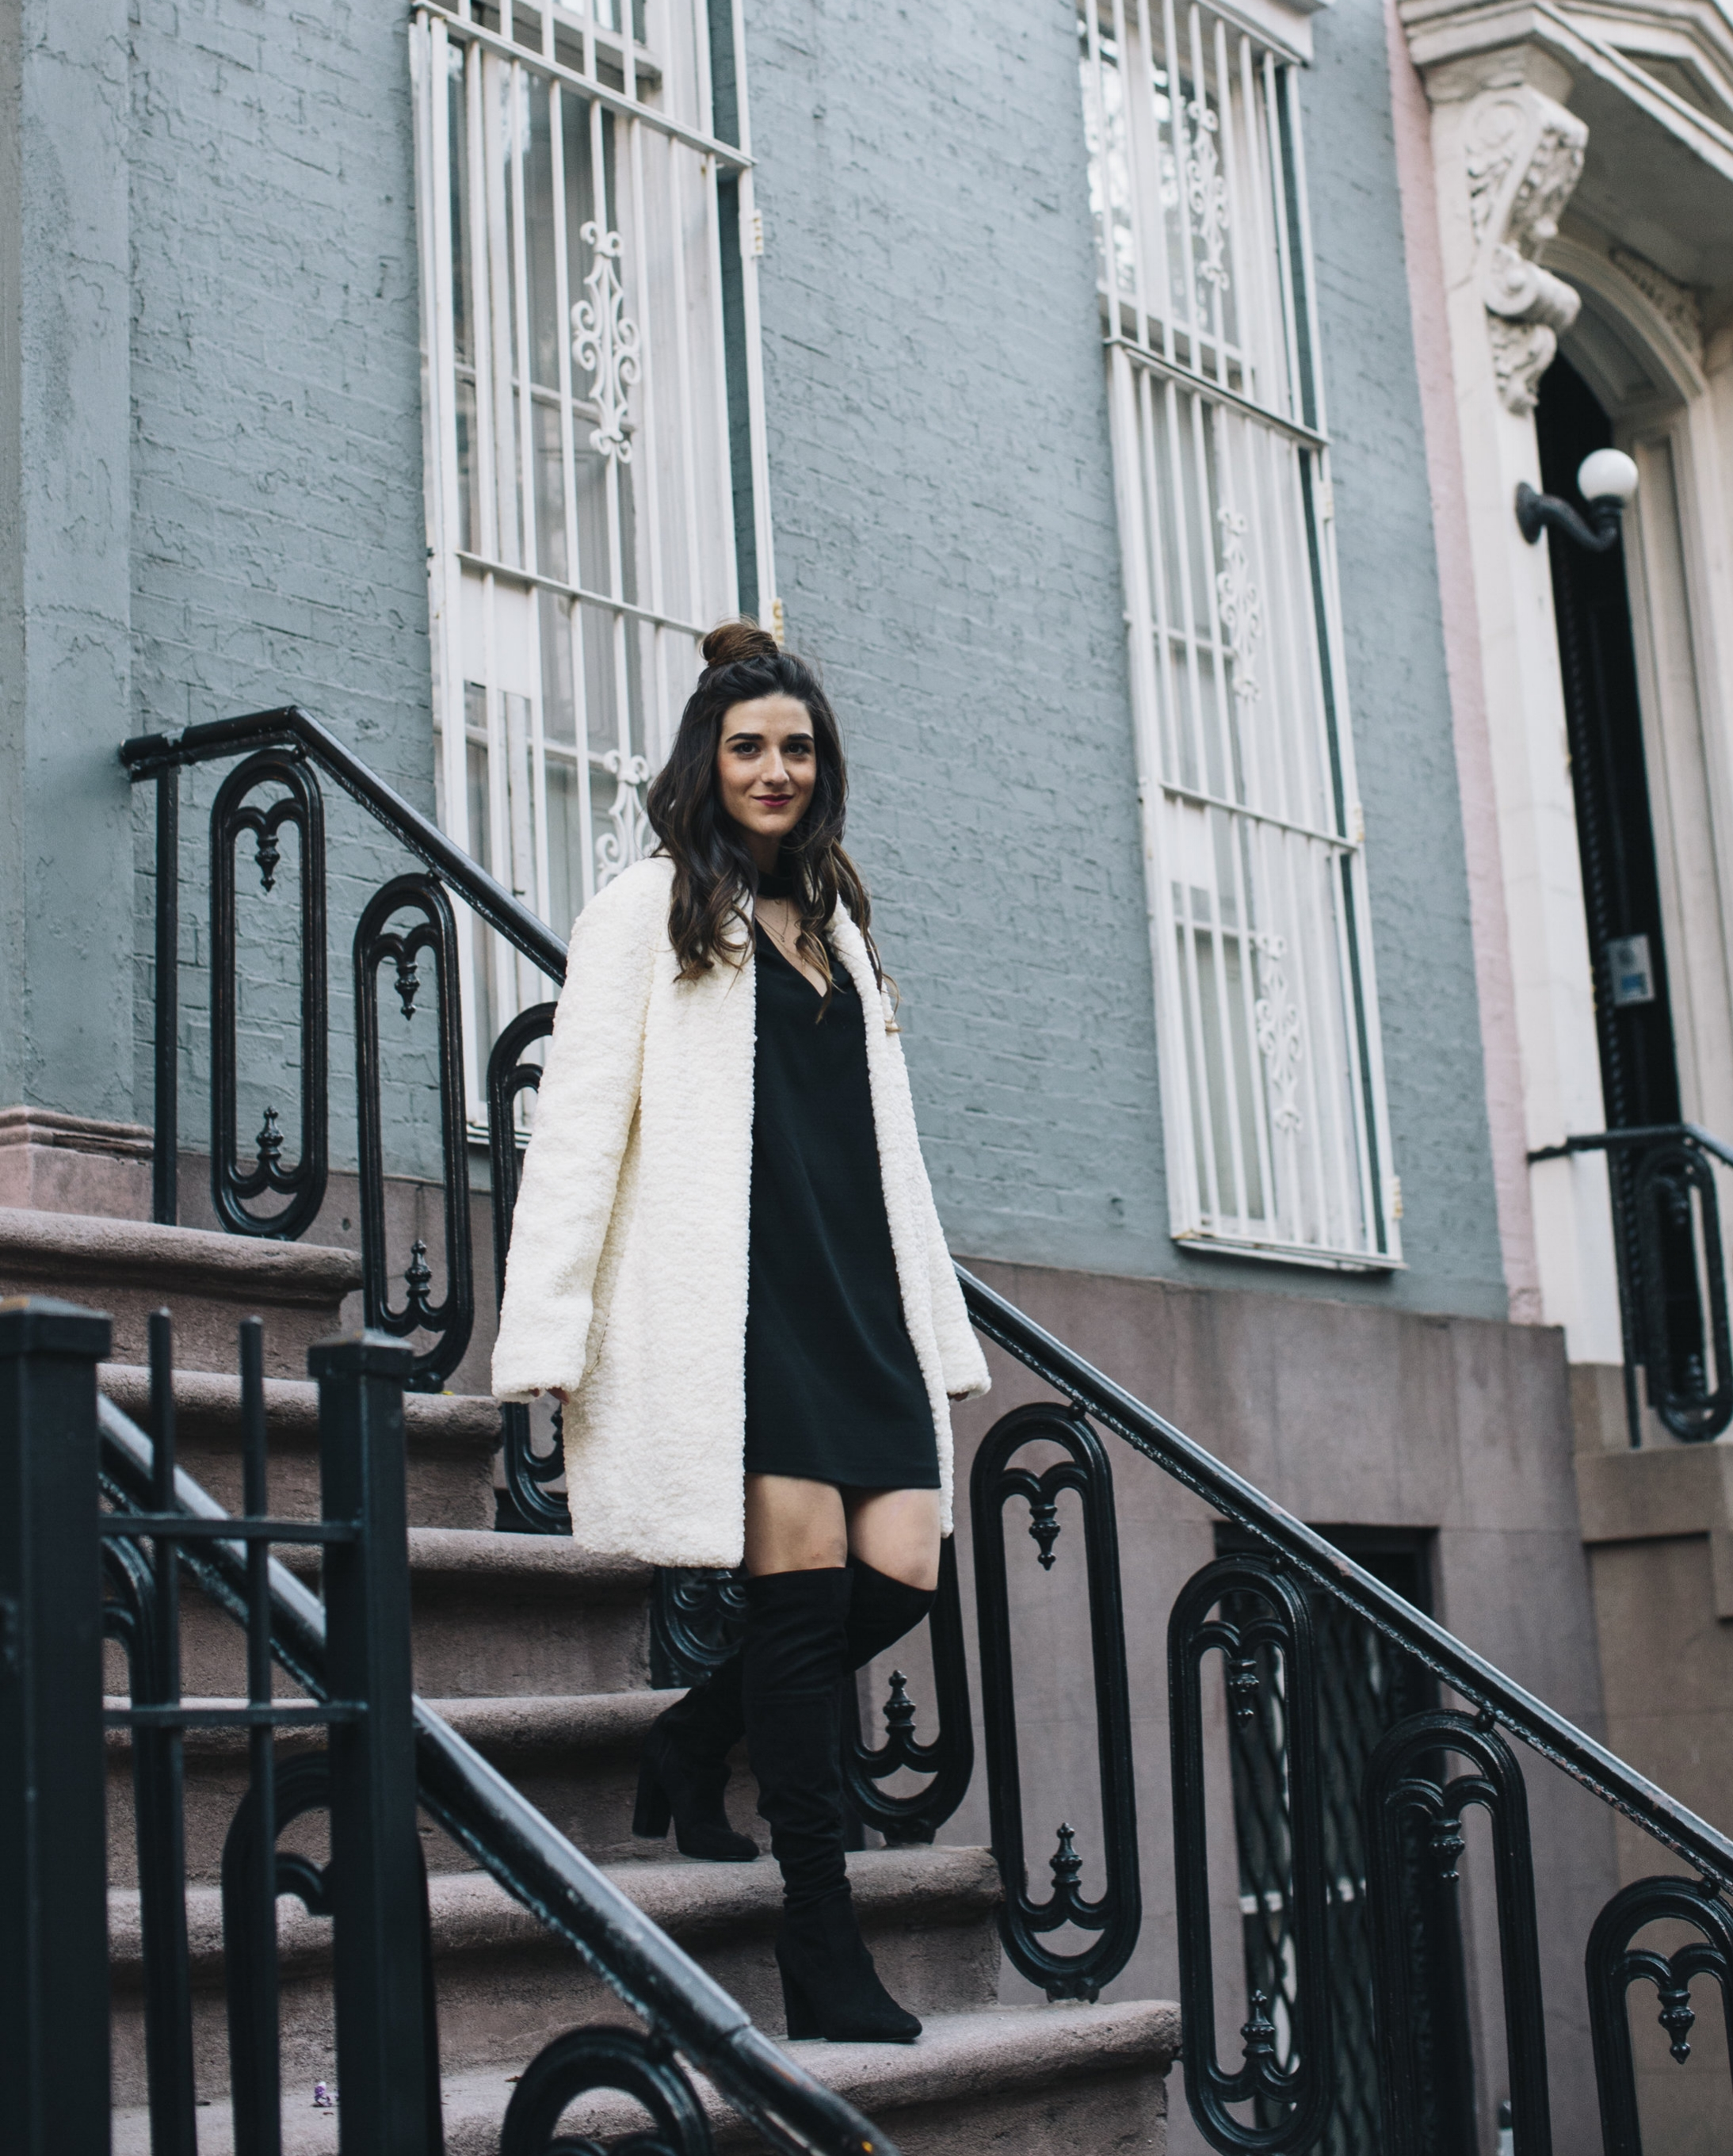 Teddy Bear Coat + OTN Boots How To Avoid Blogger Depression Louboutins & Love Fashion Blog Esther Santer NYC Street Style Blogger Outfit OOTD Trendy Ivanka Trump Nordstrom Bloomingdales Online Shopping Black Dress Zara Pretty Shoes Bun Wear Girl Women.jpg